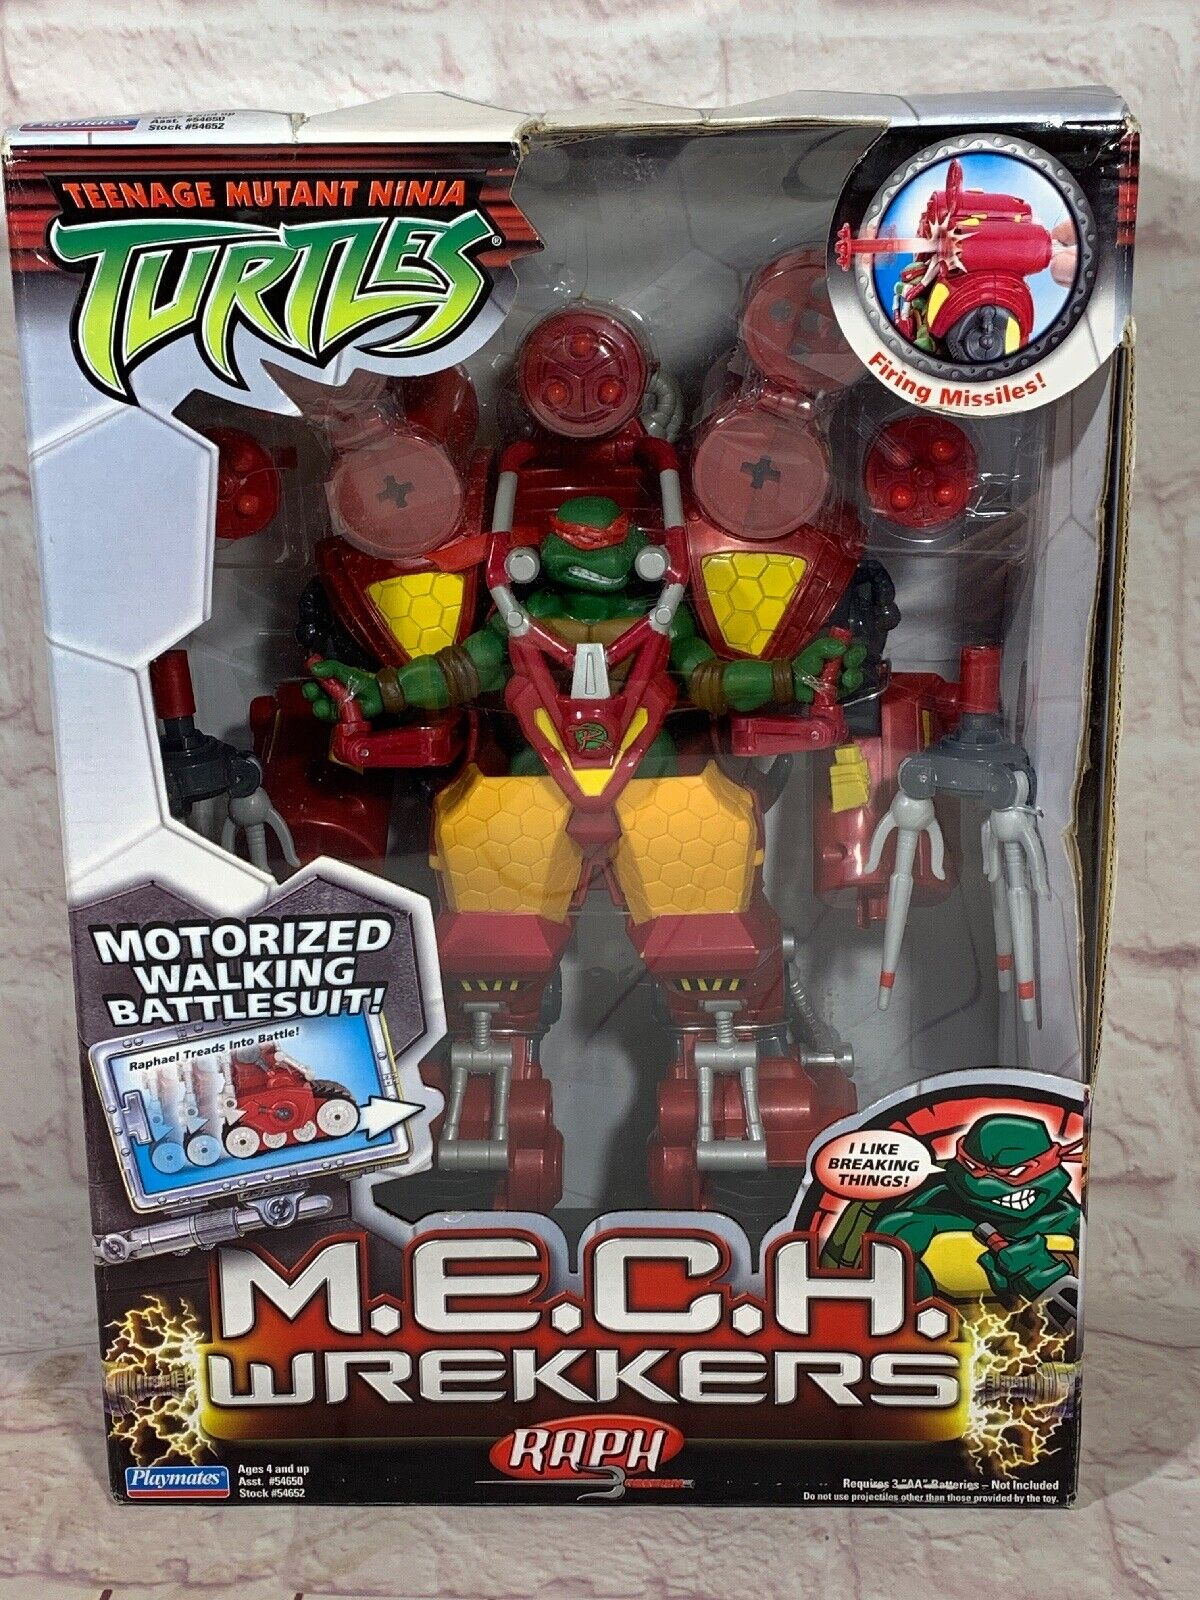 2005 TMNT M.E.C.H Wrekkers Raph Action Figure New In Package By Playmates